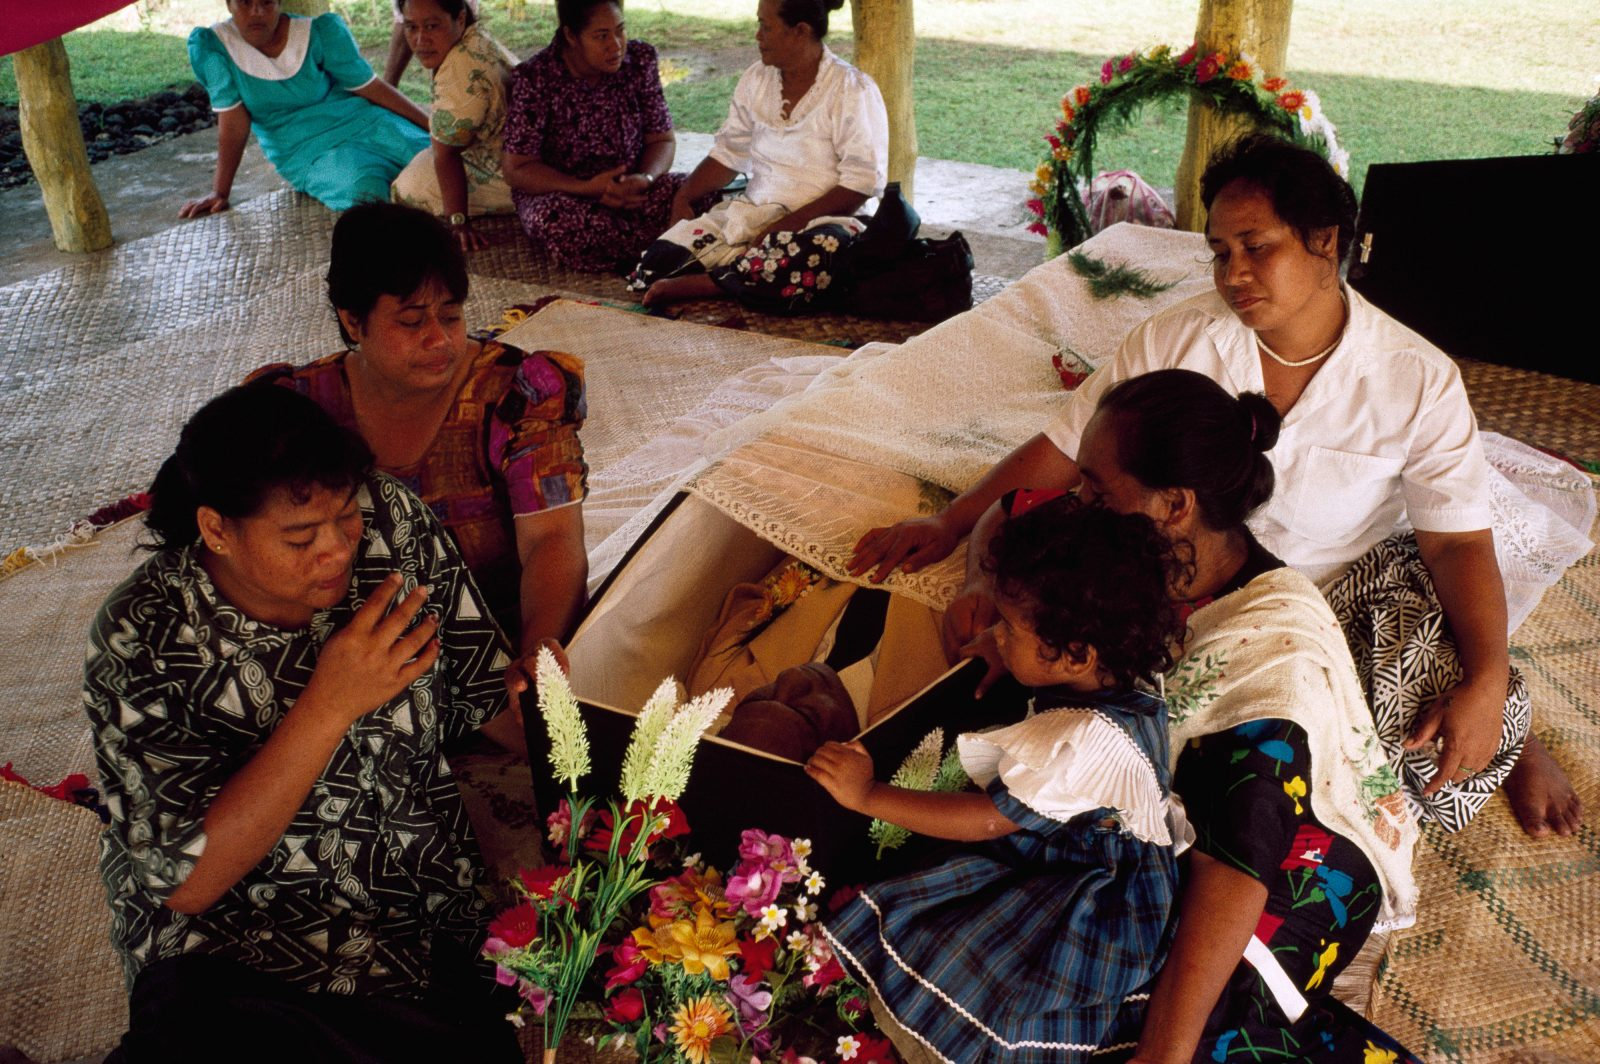 In death, as in life, the family of Elekana Tafunai of Faleasiu surround him. In Samoa, the bodies of loved ones are never left unattended, and there is no squeamishness about being near the dead person.